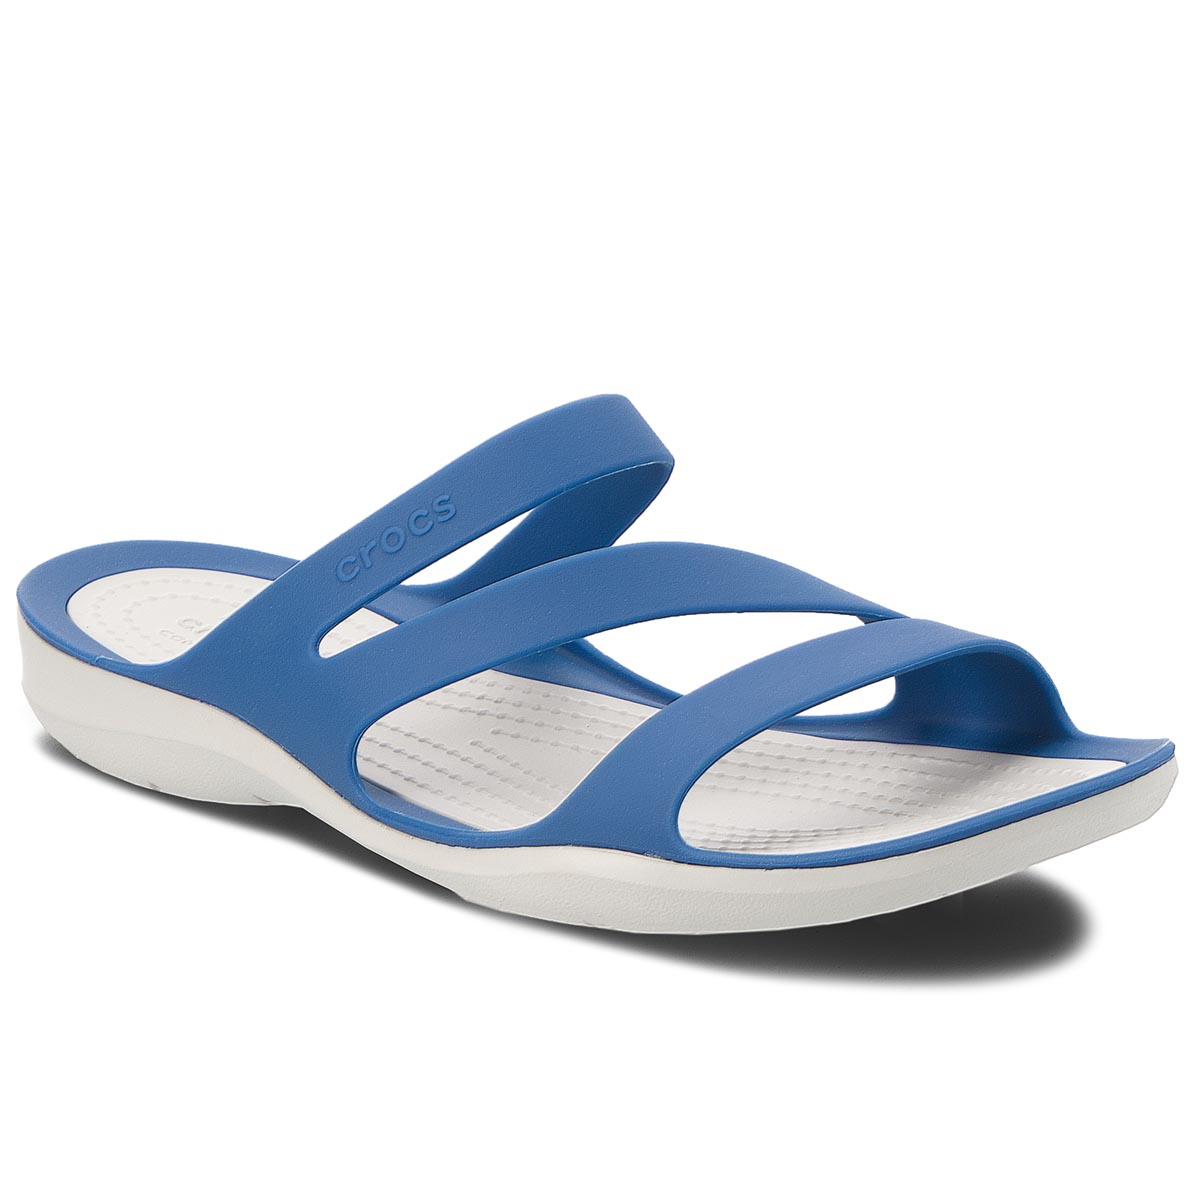 Klapki CROCS - Swiftwater Sandal W 203998  Blue Jean/Pearl White